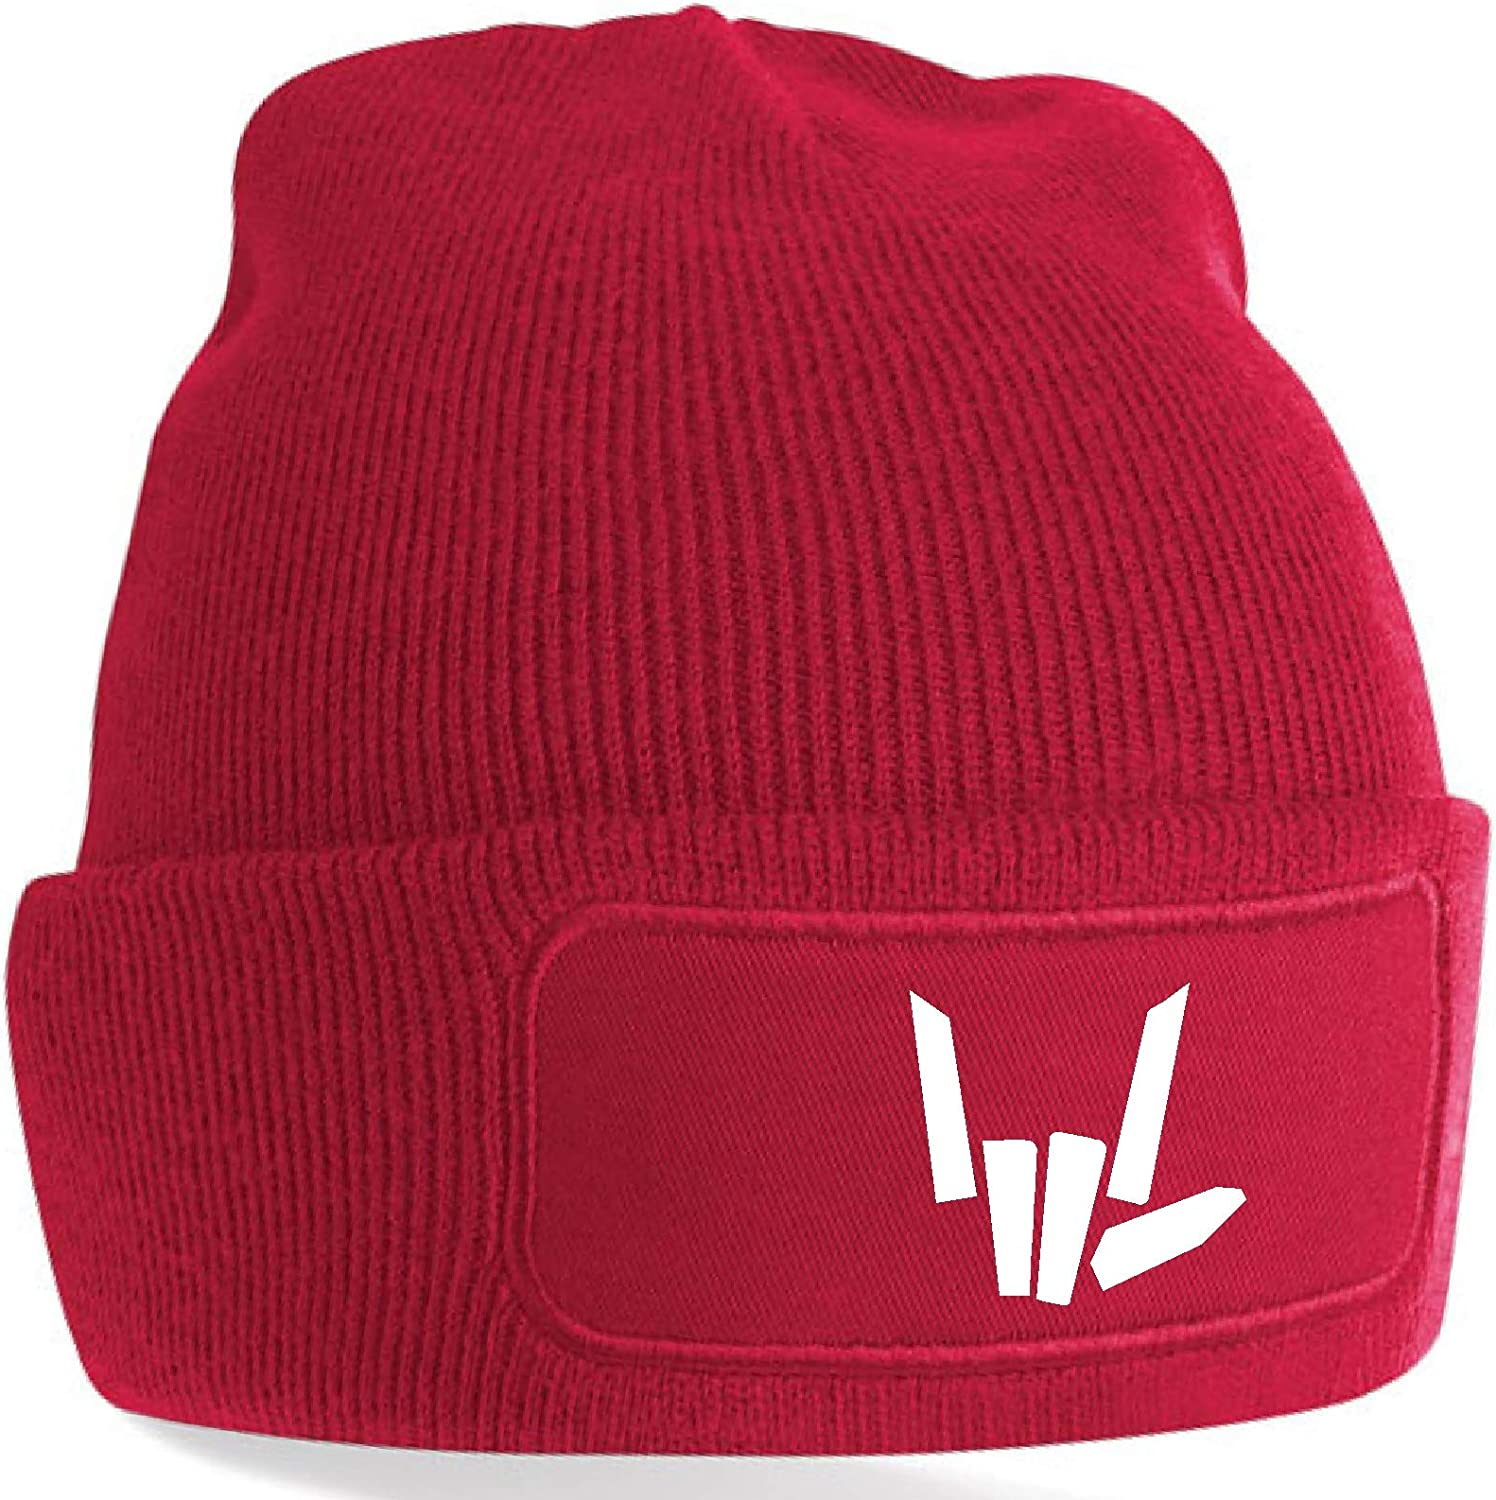 Beanie HAT Wooly Winter Share The Love Sharer Stephen 3 Colours YouTube